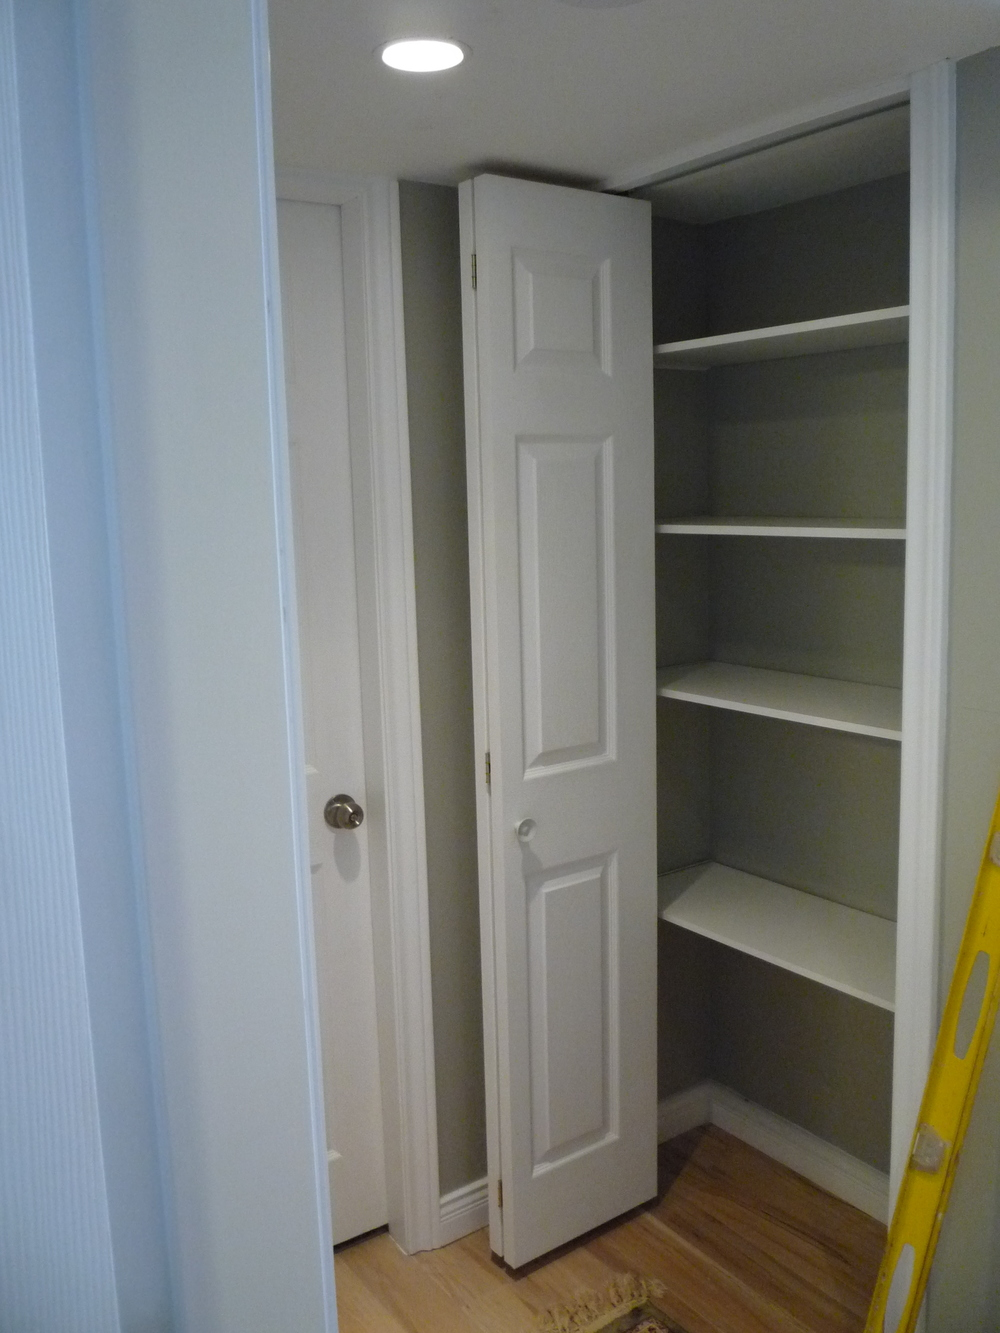 Linen Closet with Interior Shelf Organizers